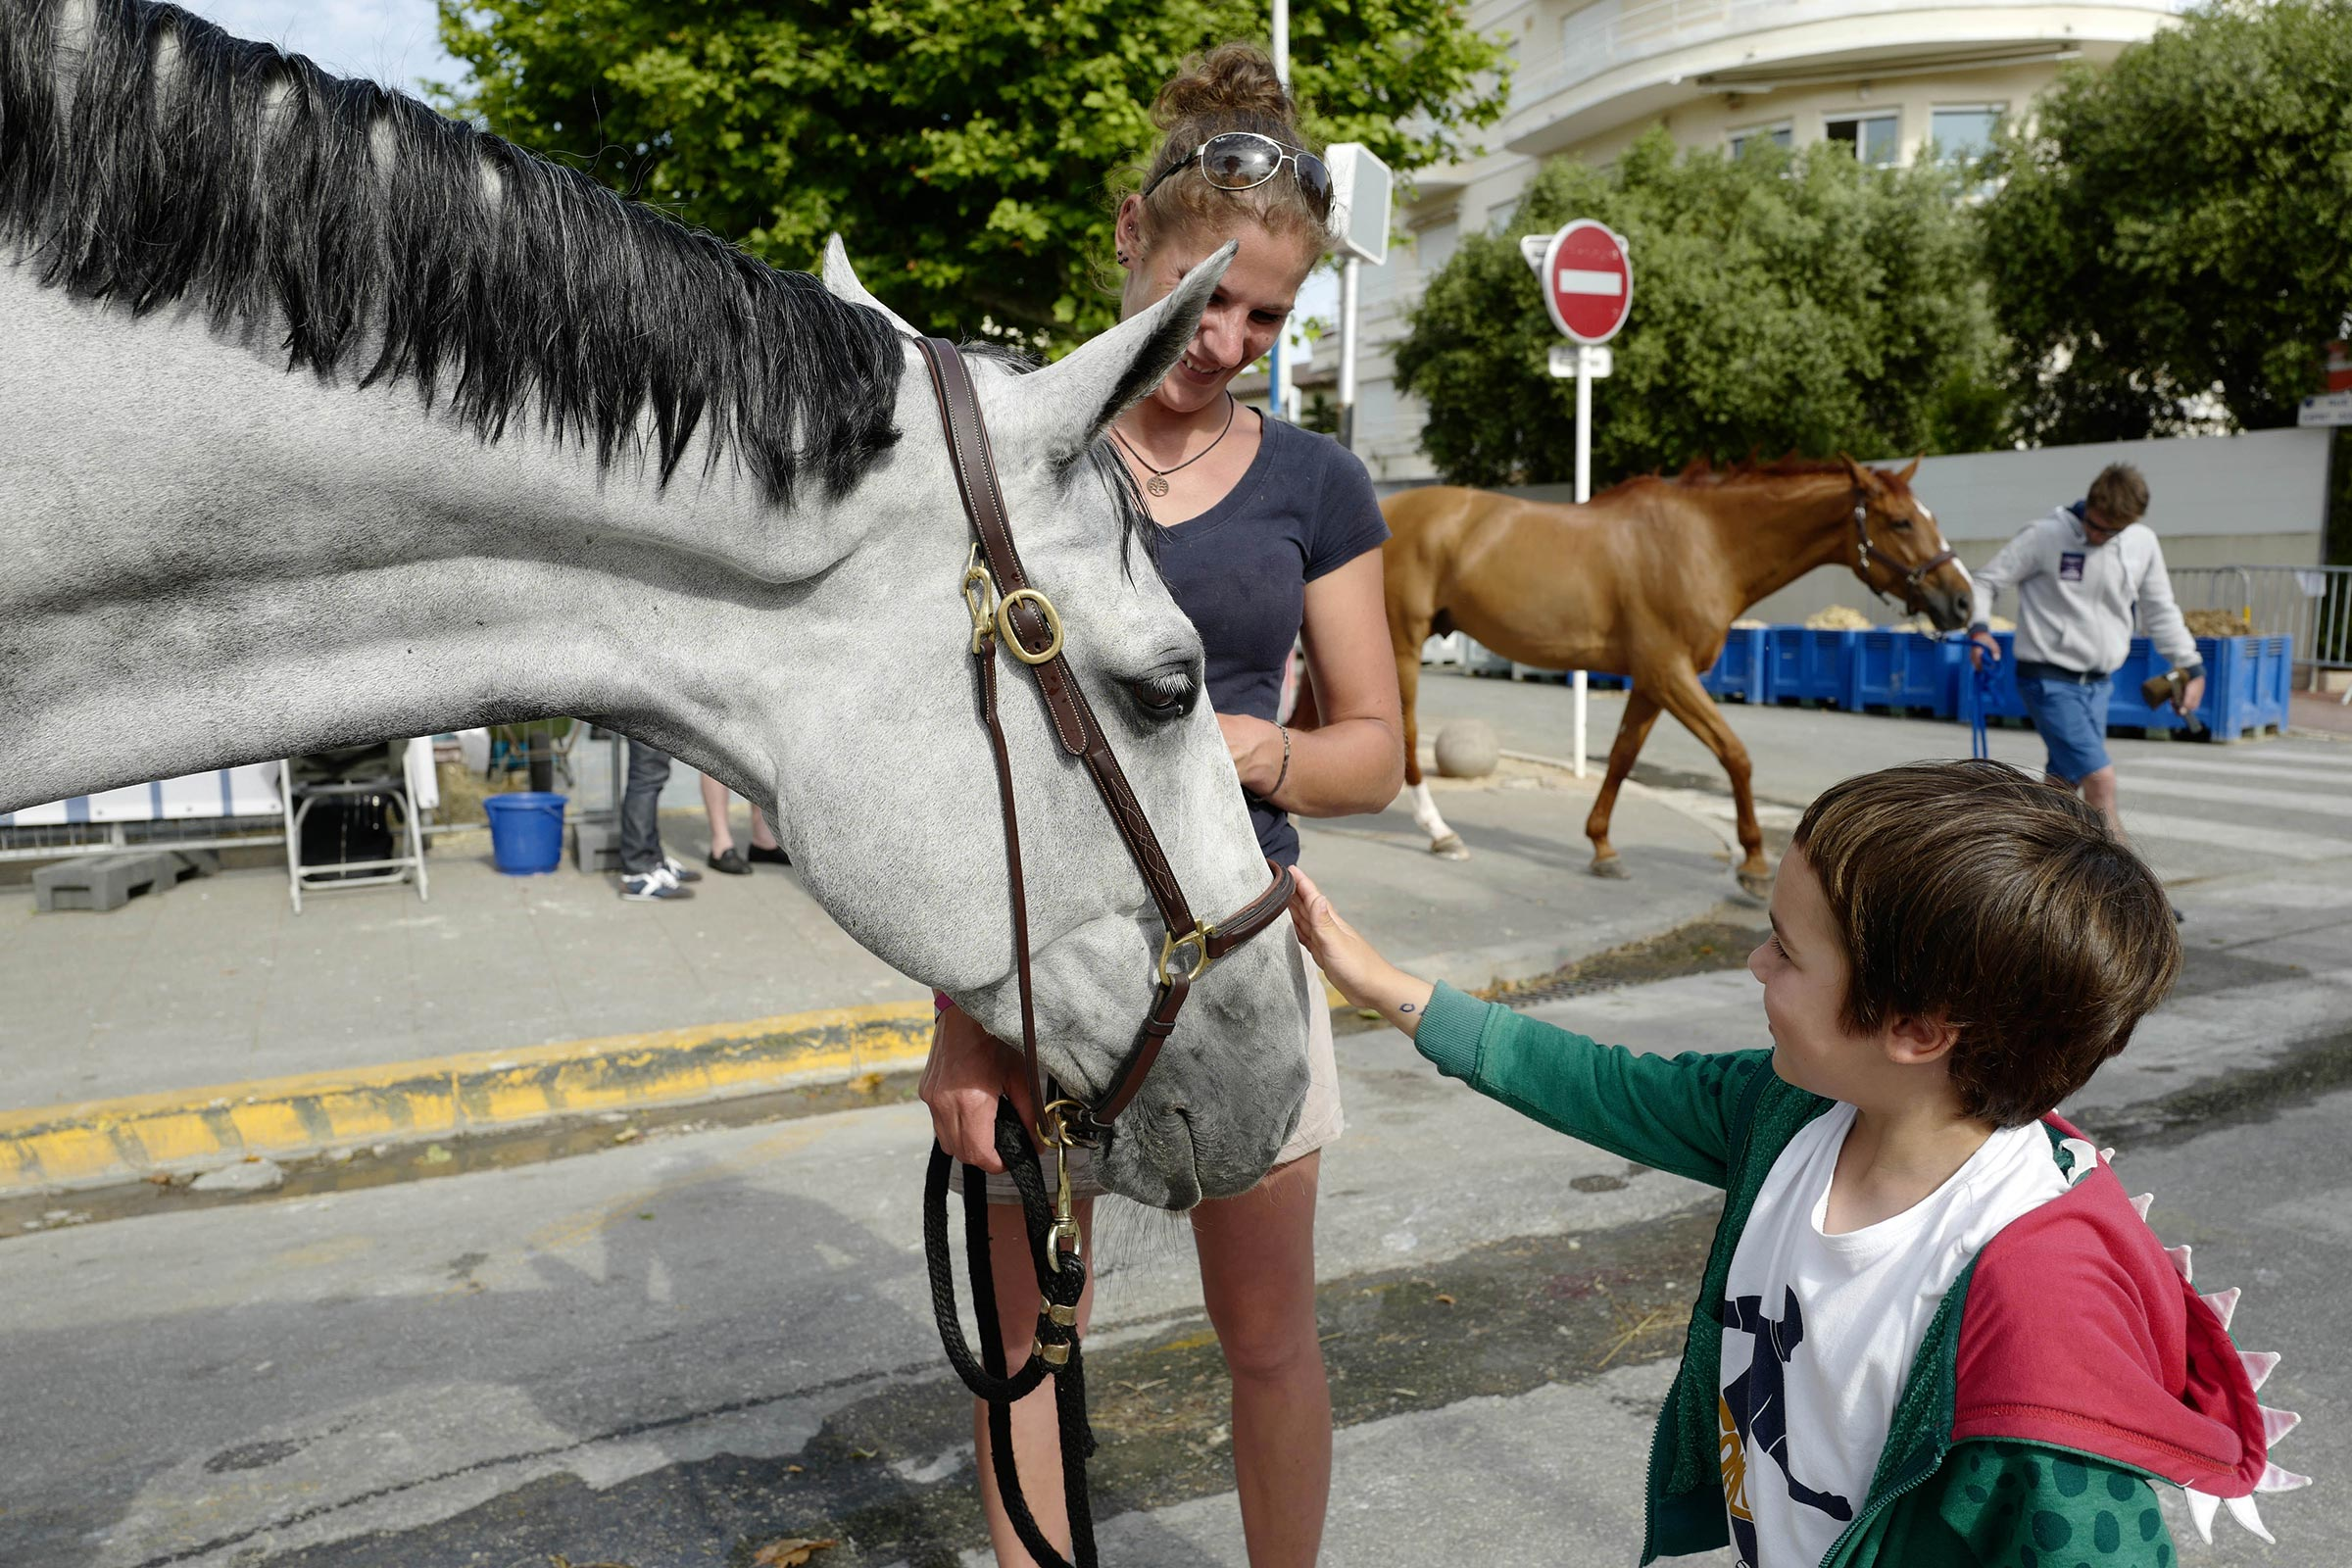 Families with children familiarise with horses behind the scenes ph.Stefano Grasso/LGCT CANNES 2019 DOWNLOAD